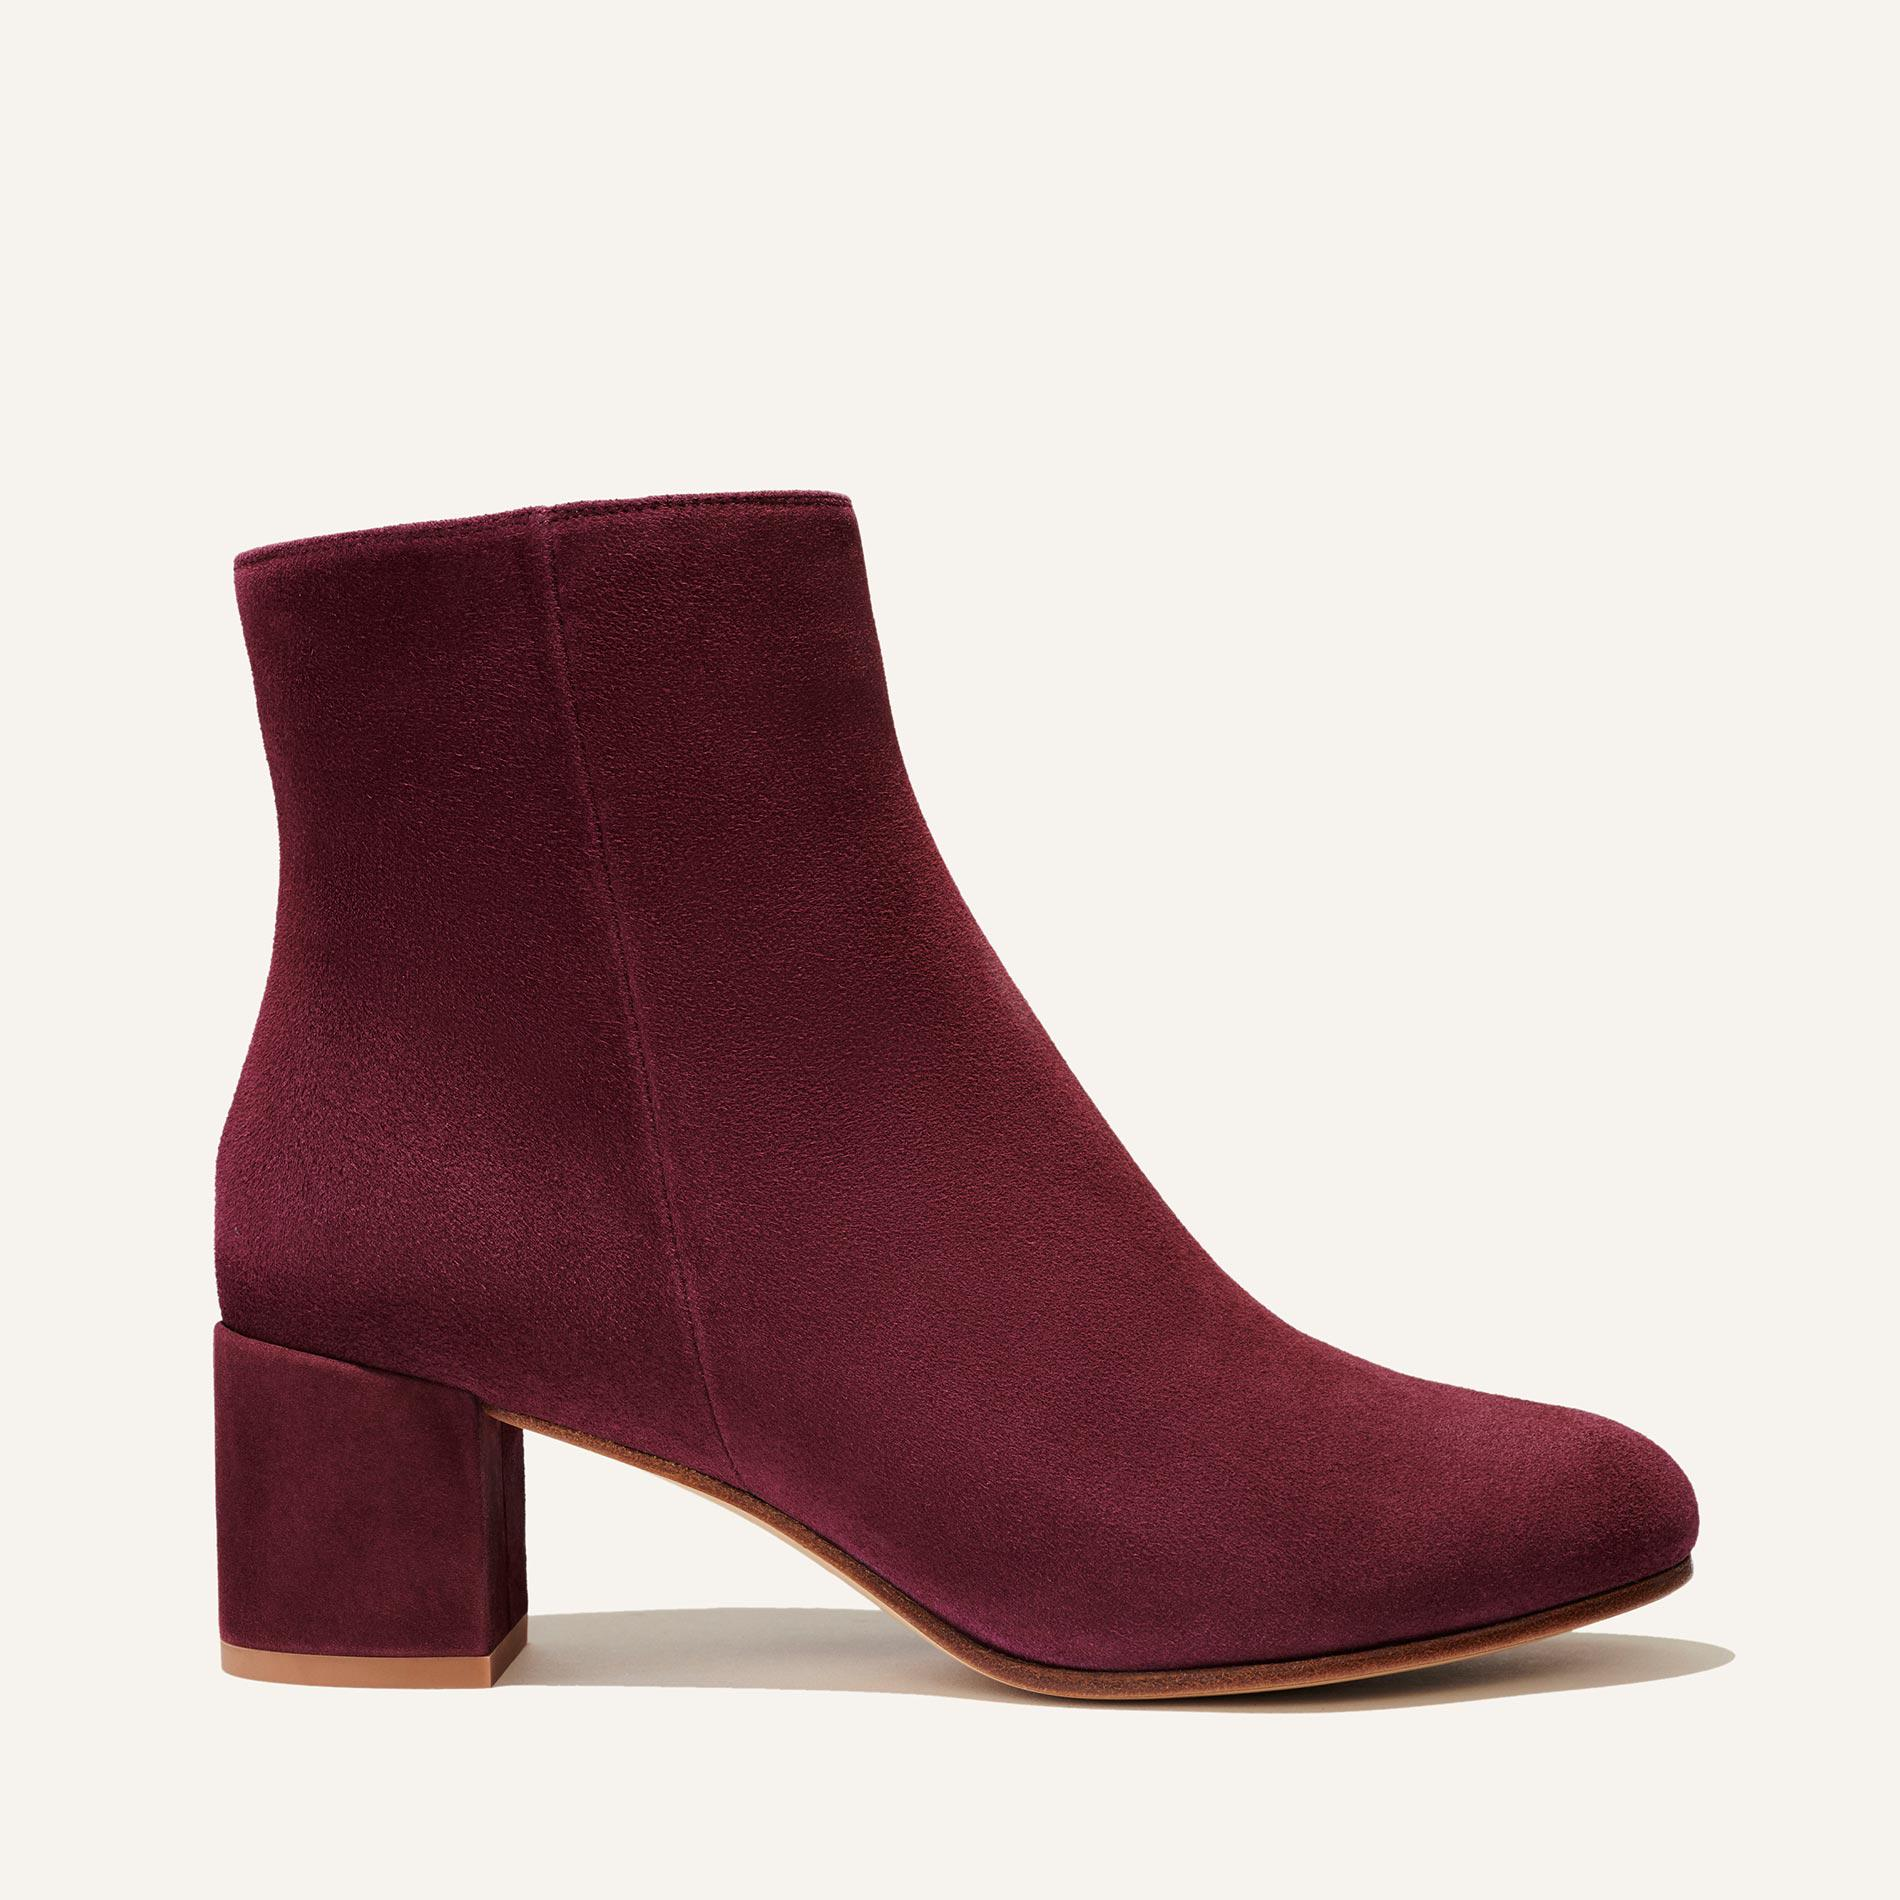 The Boot - Mulberry 0